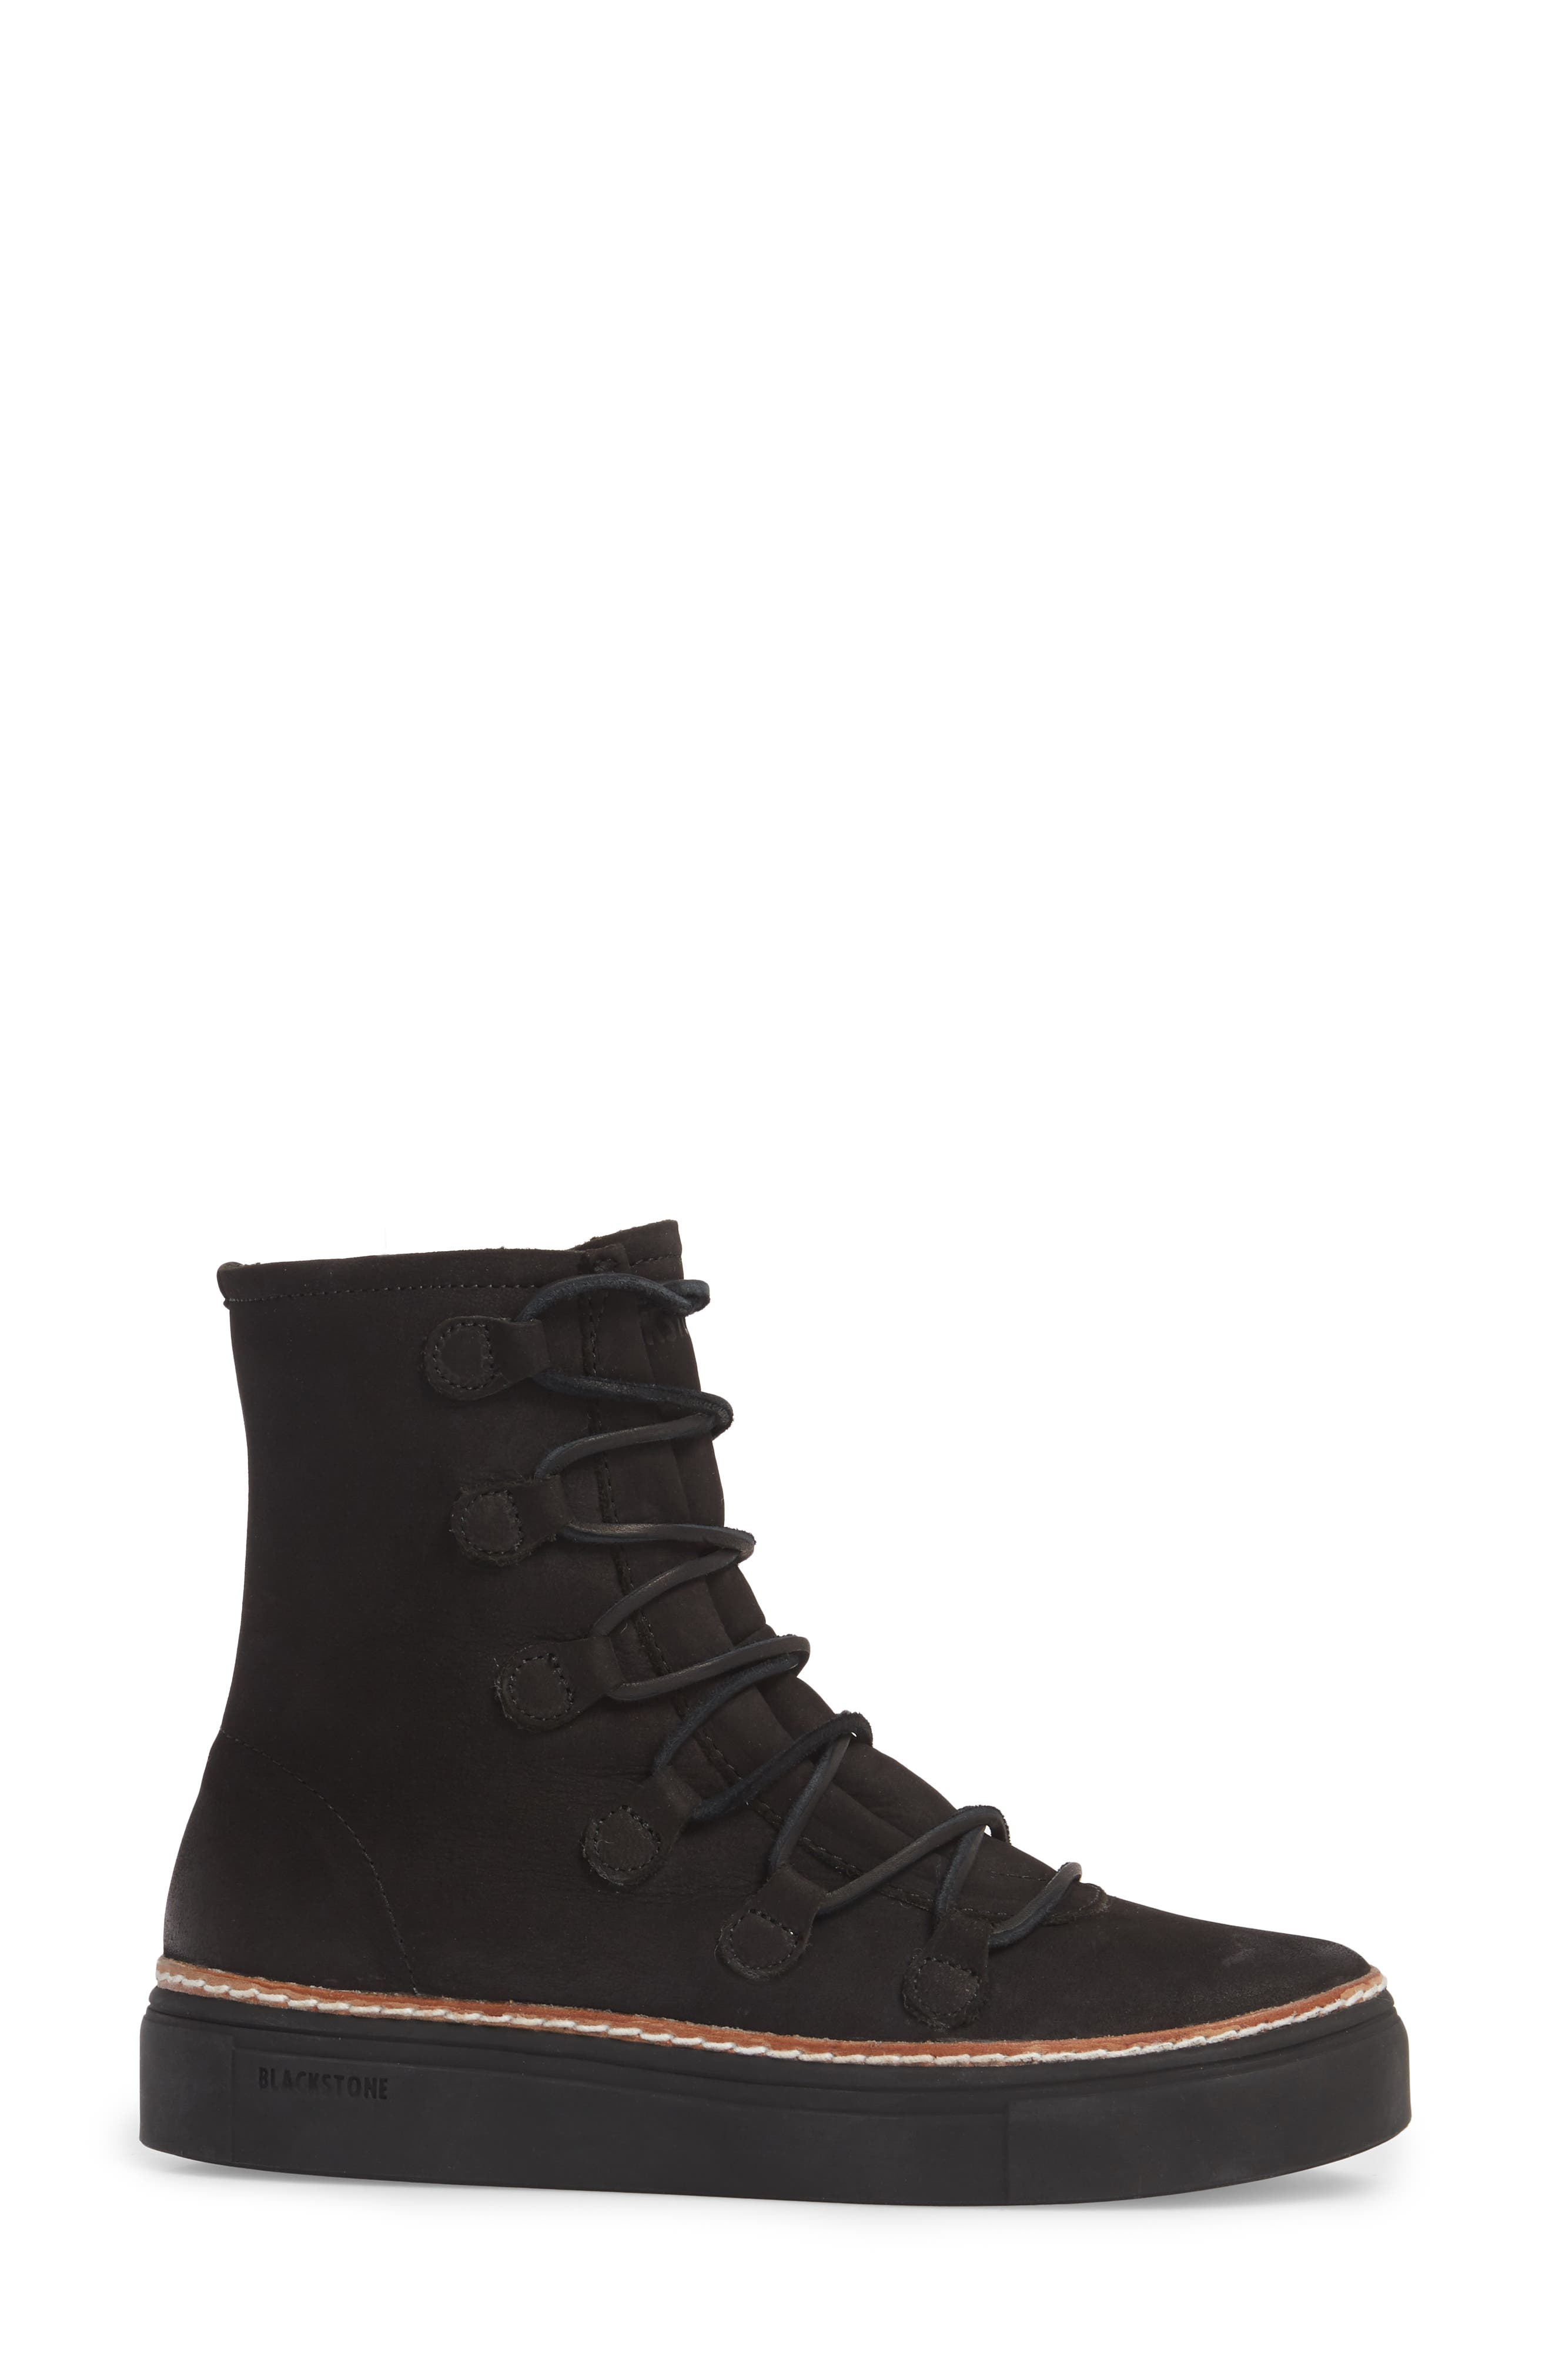 OL26 Genuine Shearling Lined Lace-Up Bootie,                             Alternate thumbnail 3, color,                             Black Nubuck Leather